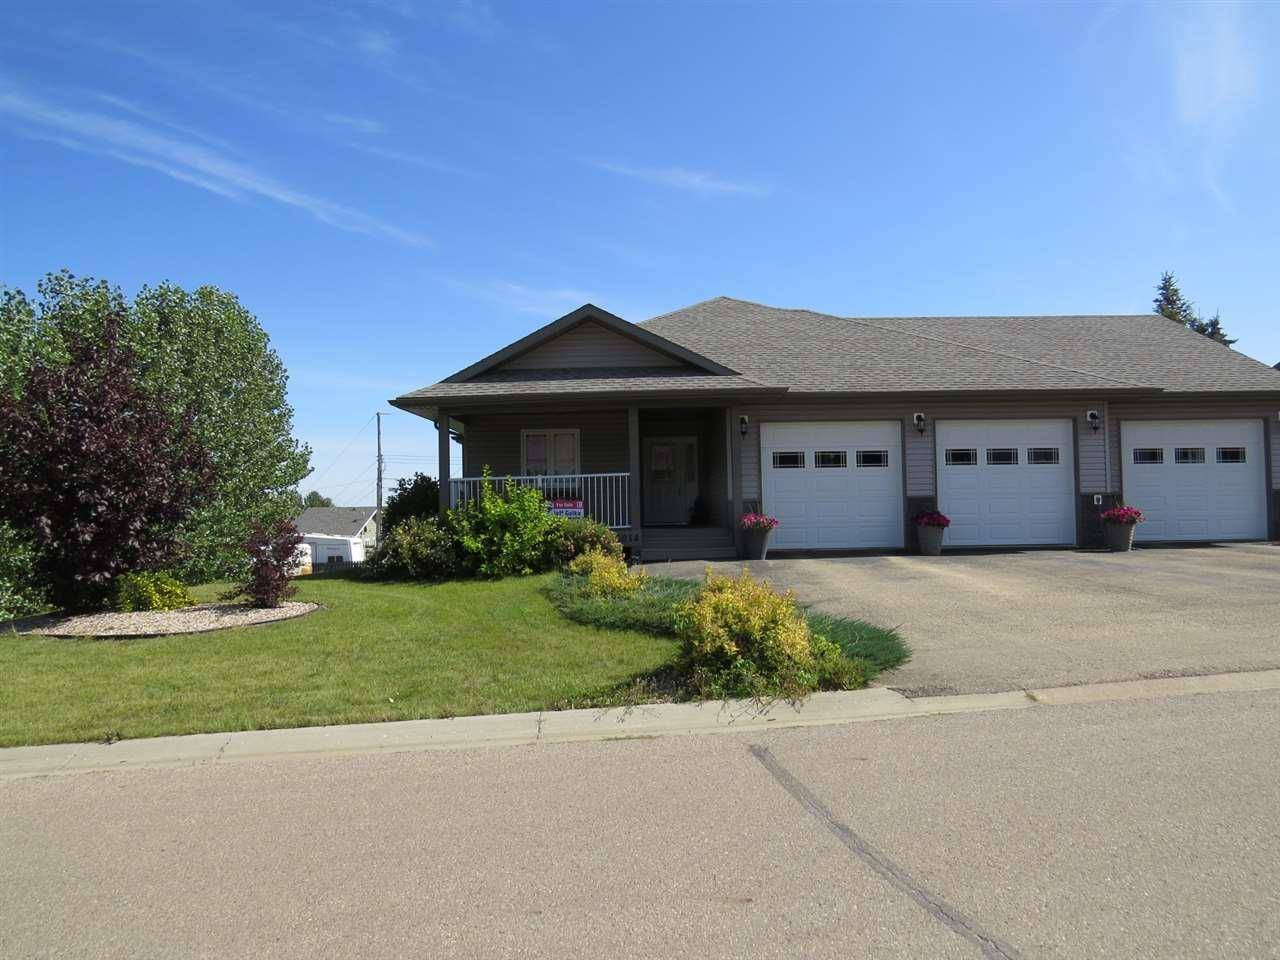 House for sale at 5014 46 St Sedgewick Alberta - MLS: E4170841